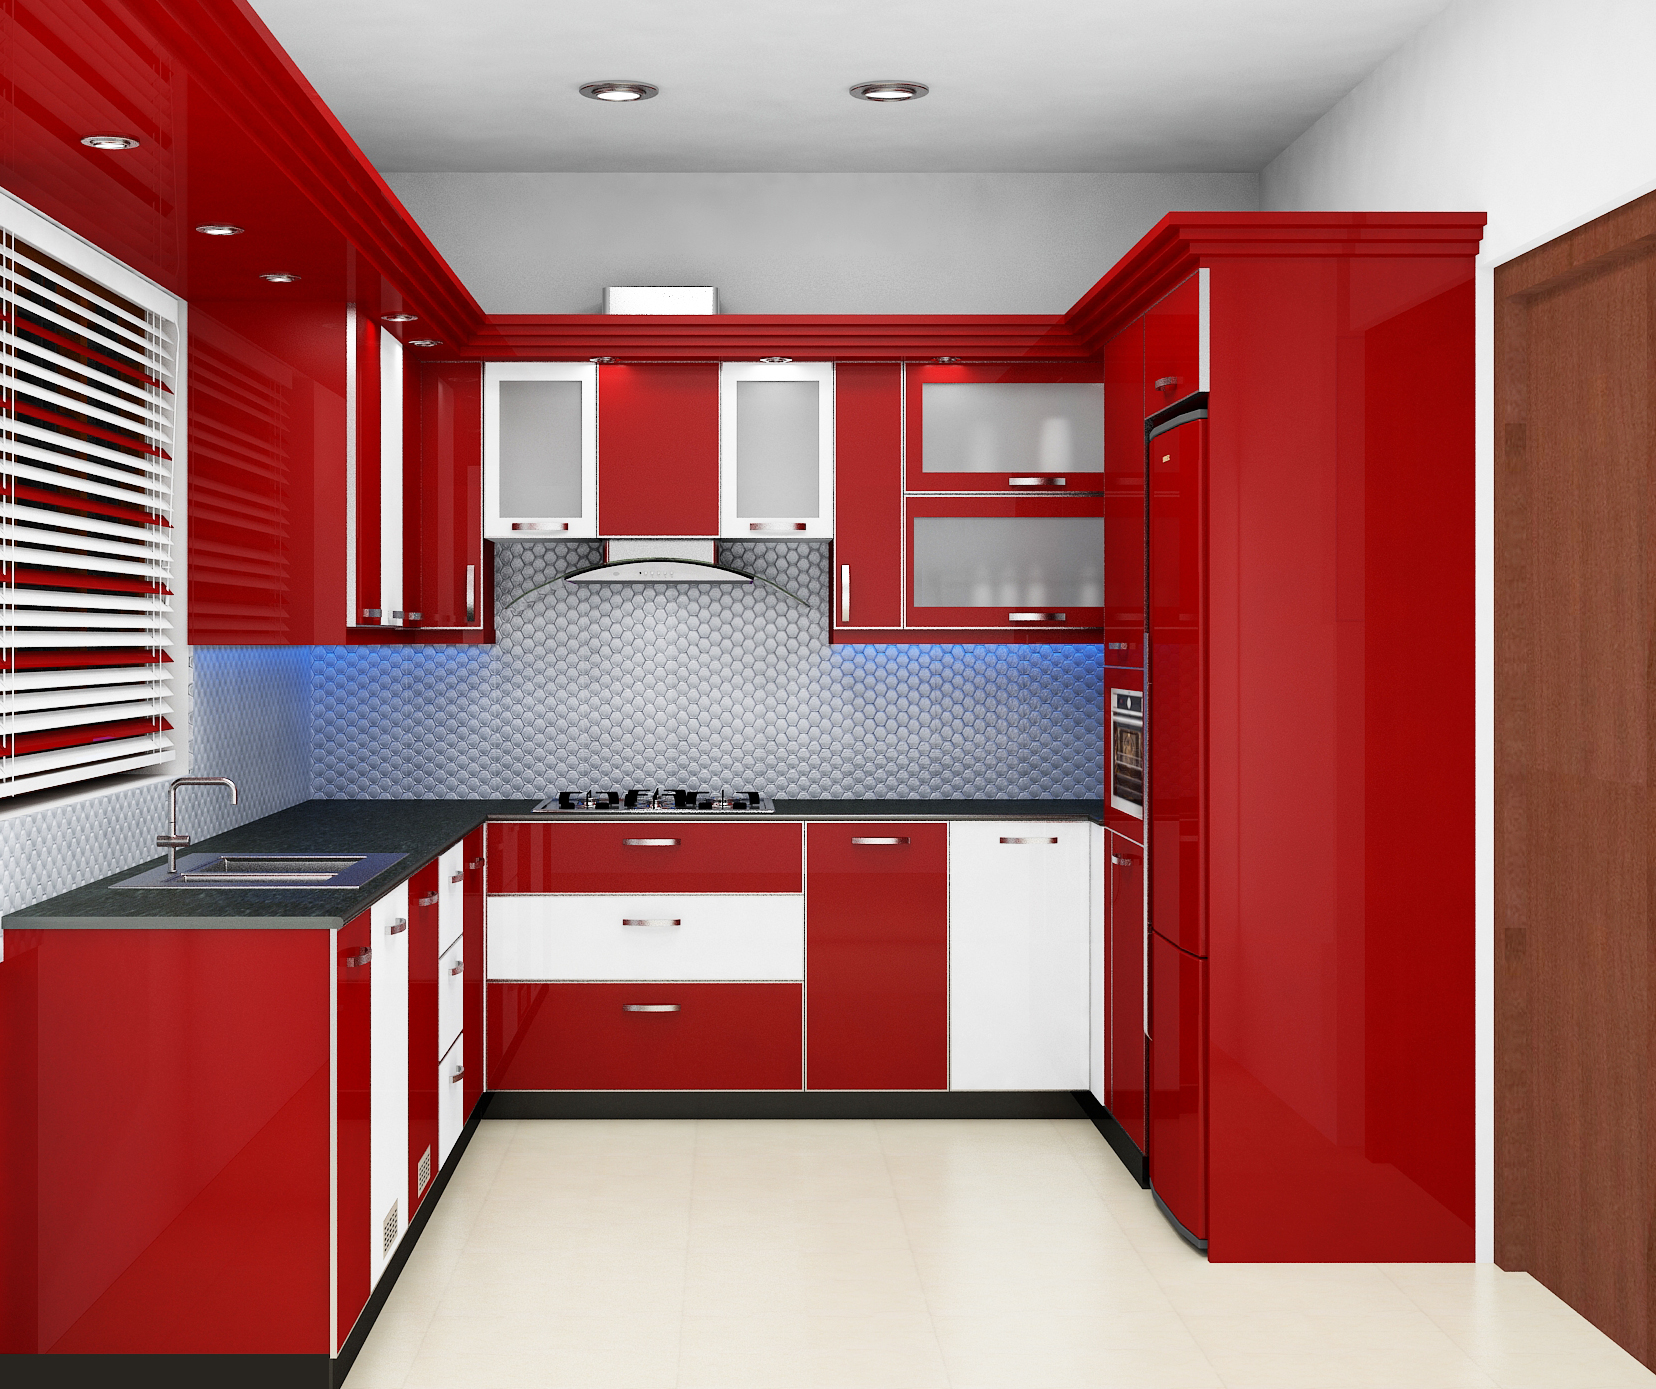 Incredible-And-Marvellous-Kerala-Home-Interior-Modular-Kitchen-1-Designs.jpg